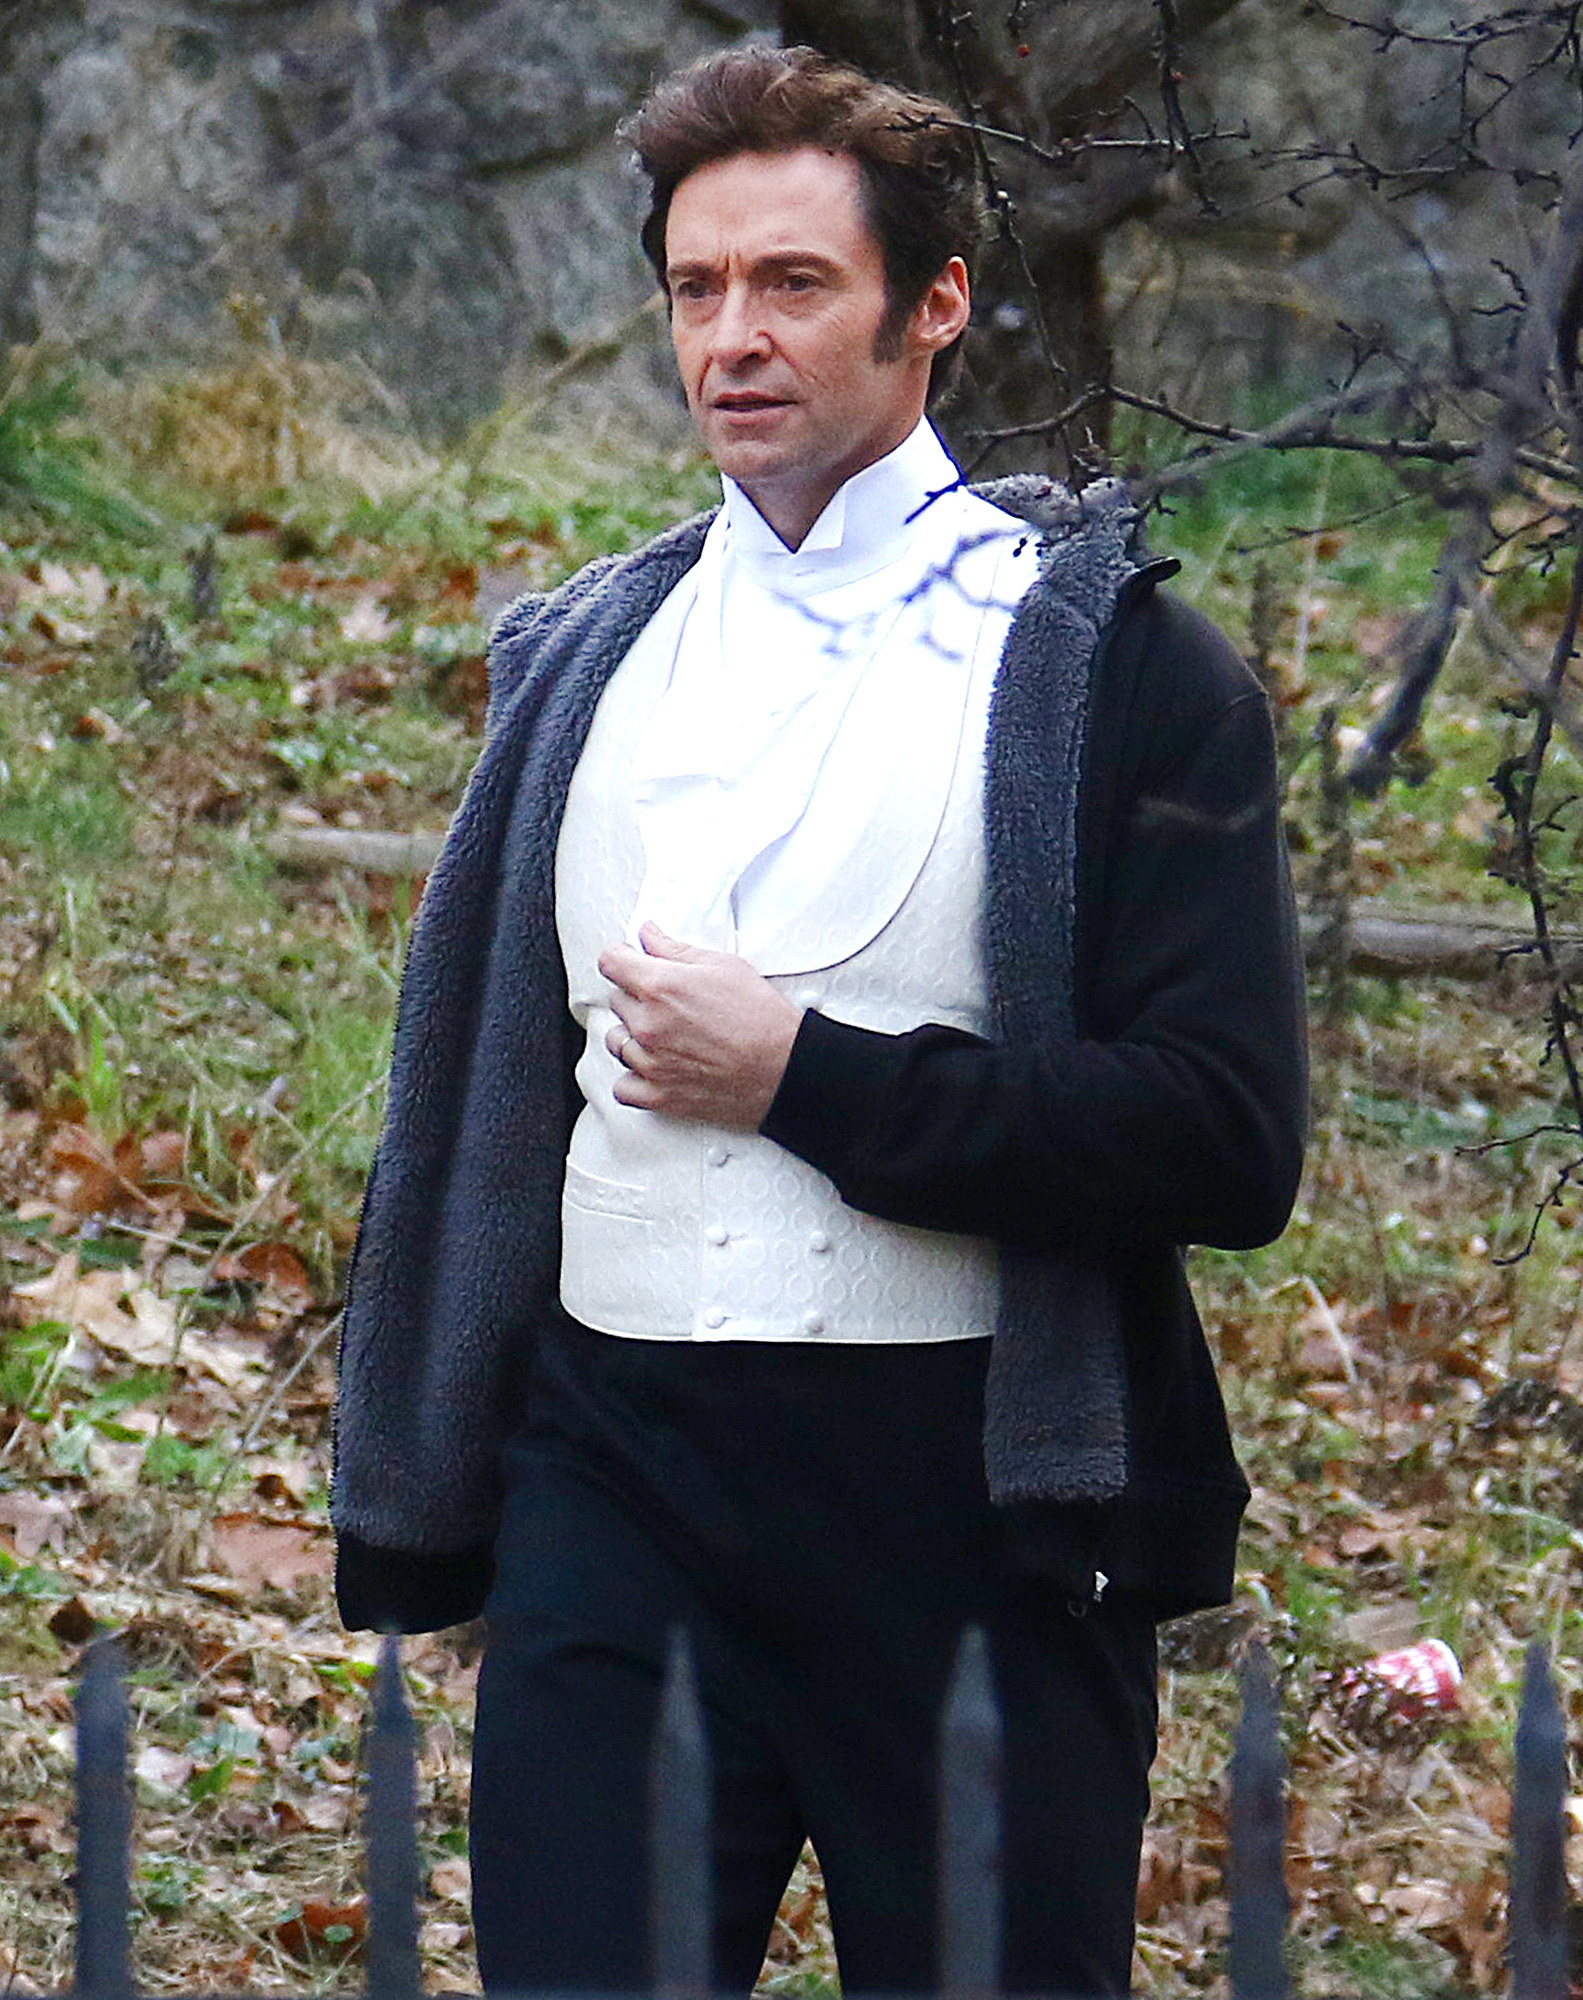 EXCLUSIVE: Actor and Producer Hugh Jackman makes his way on The Greatest Showman Brooklyn set